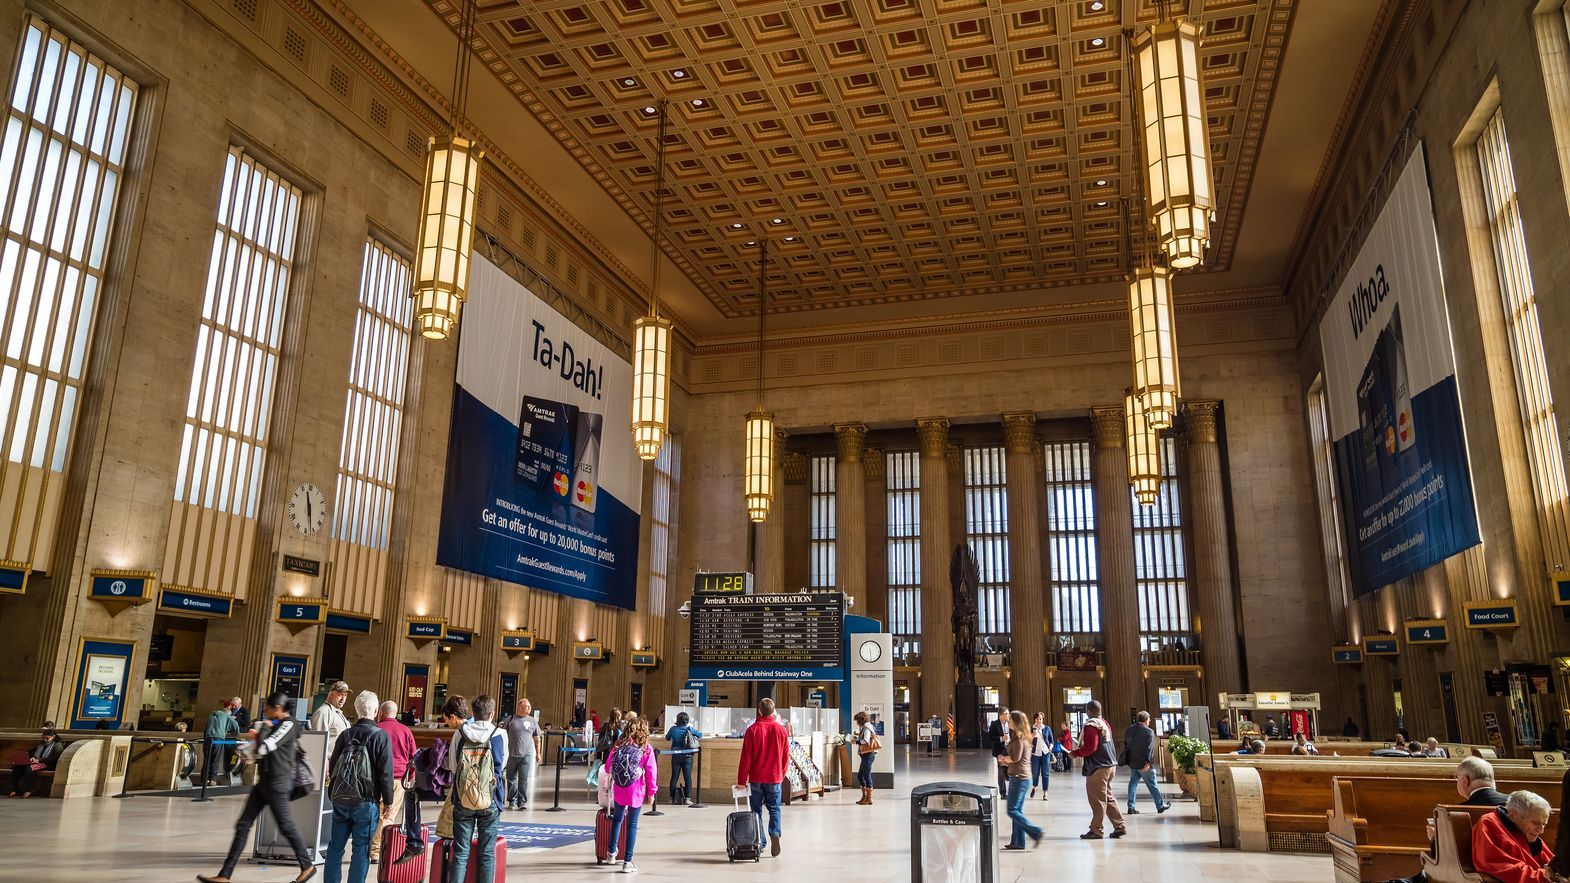 The ultimate guide to 30th street station 30th street